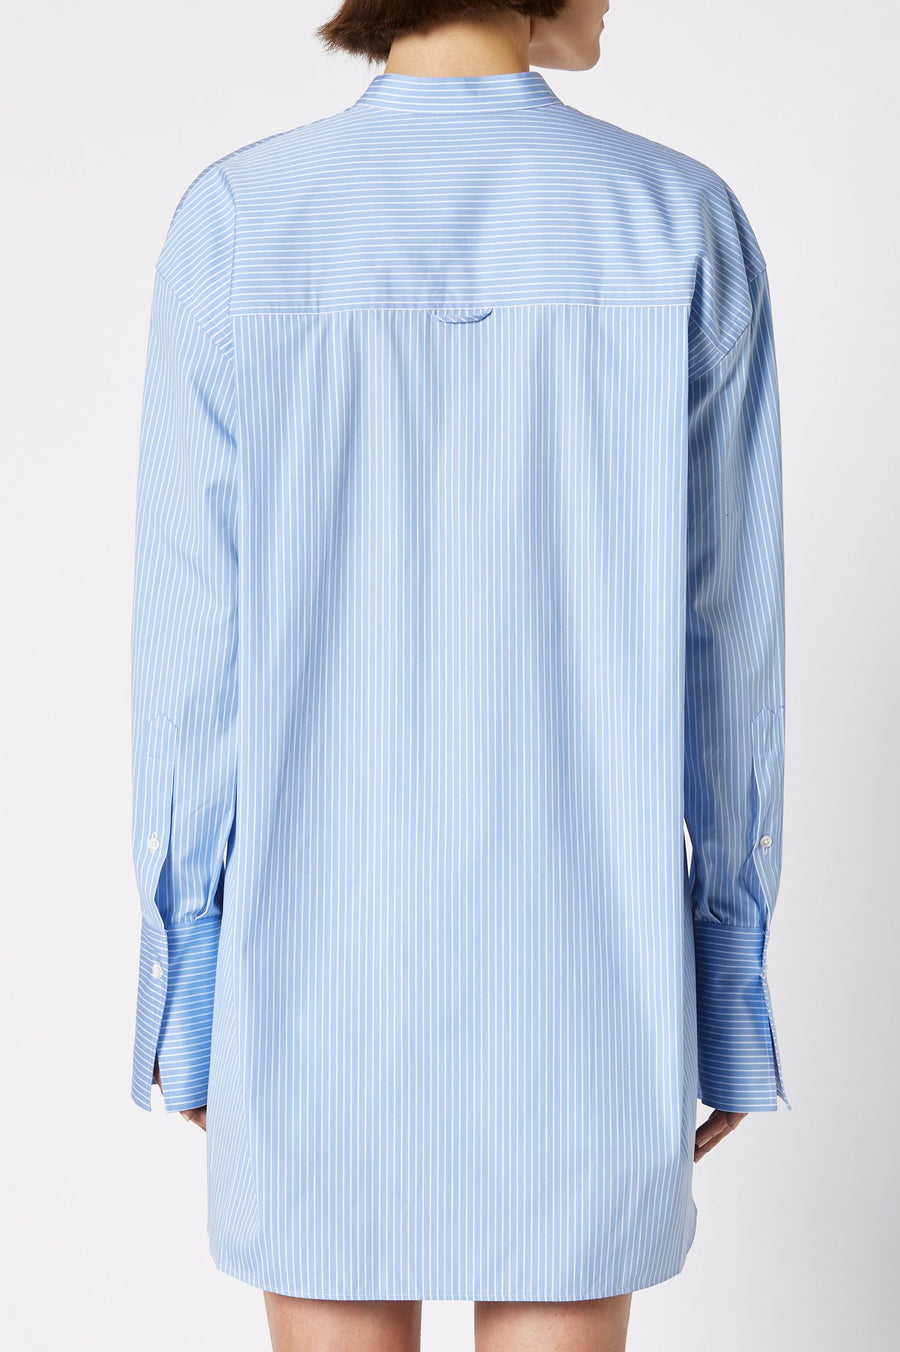 COLLAR STAND SHIRT PALE.BLUE, Loose fit, stay true to size, Long sleeves